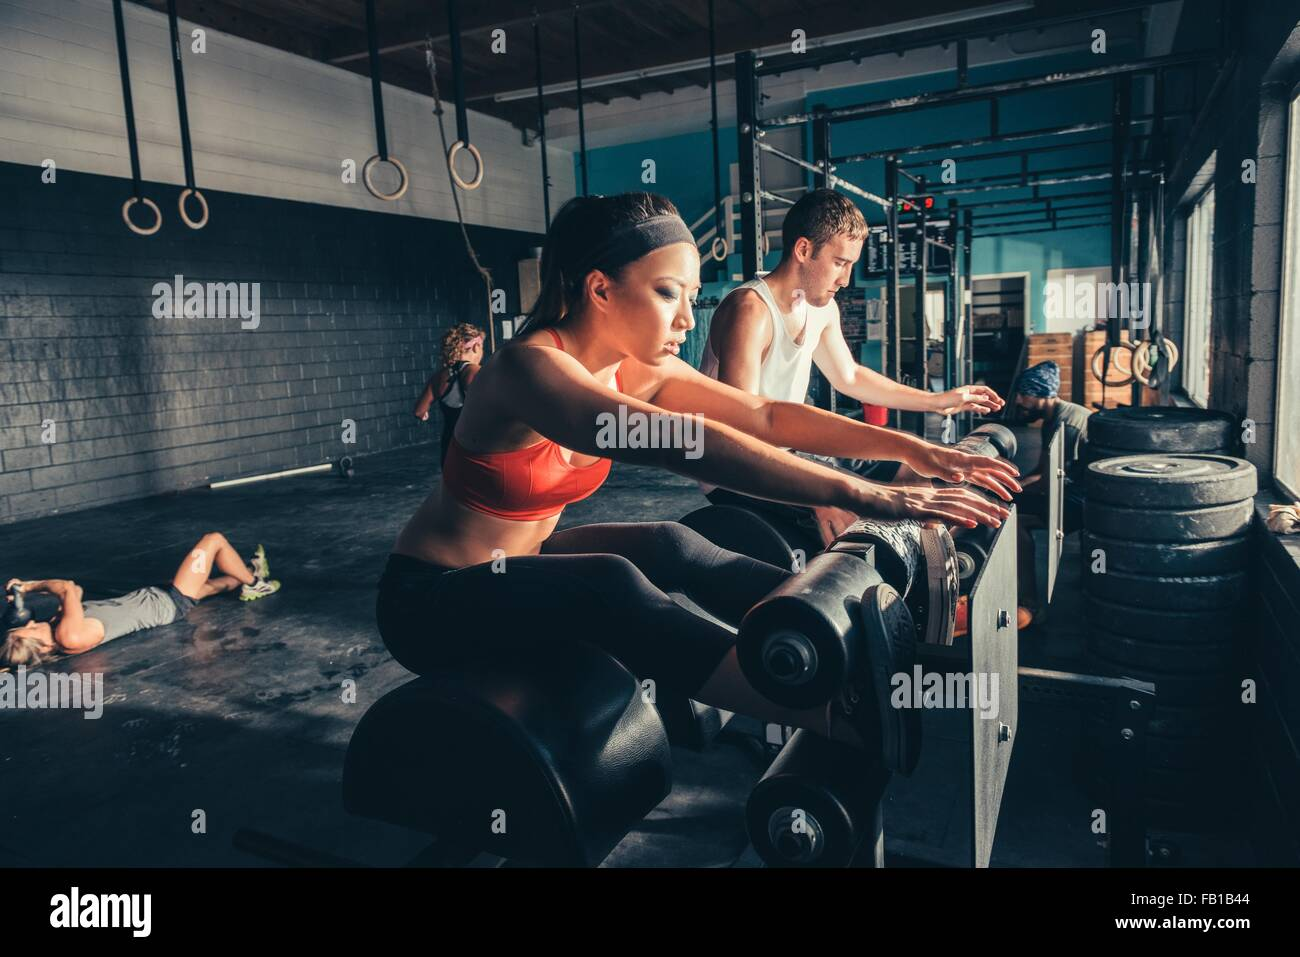 People training on exercise equipment in gym - Stock Image